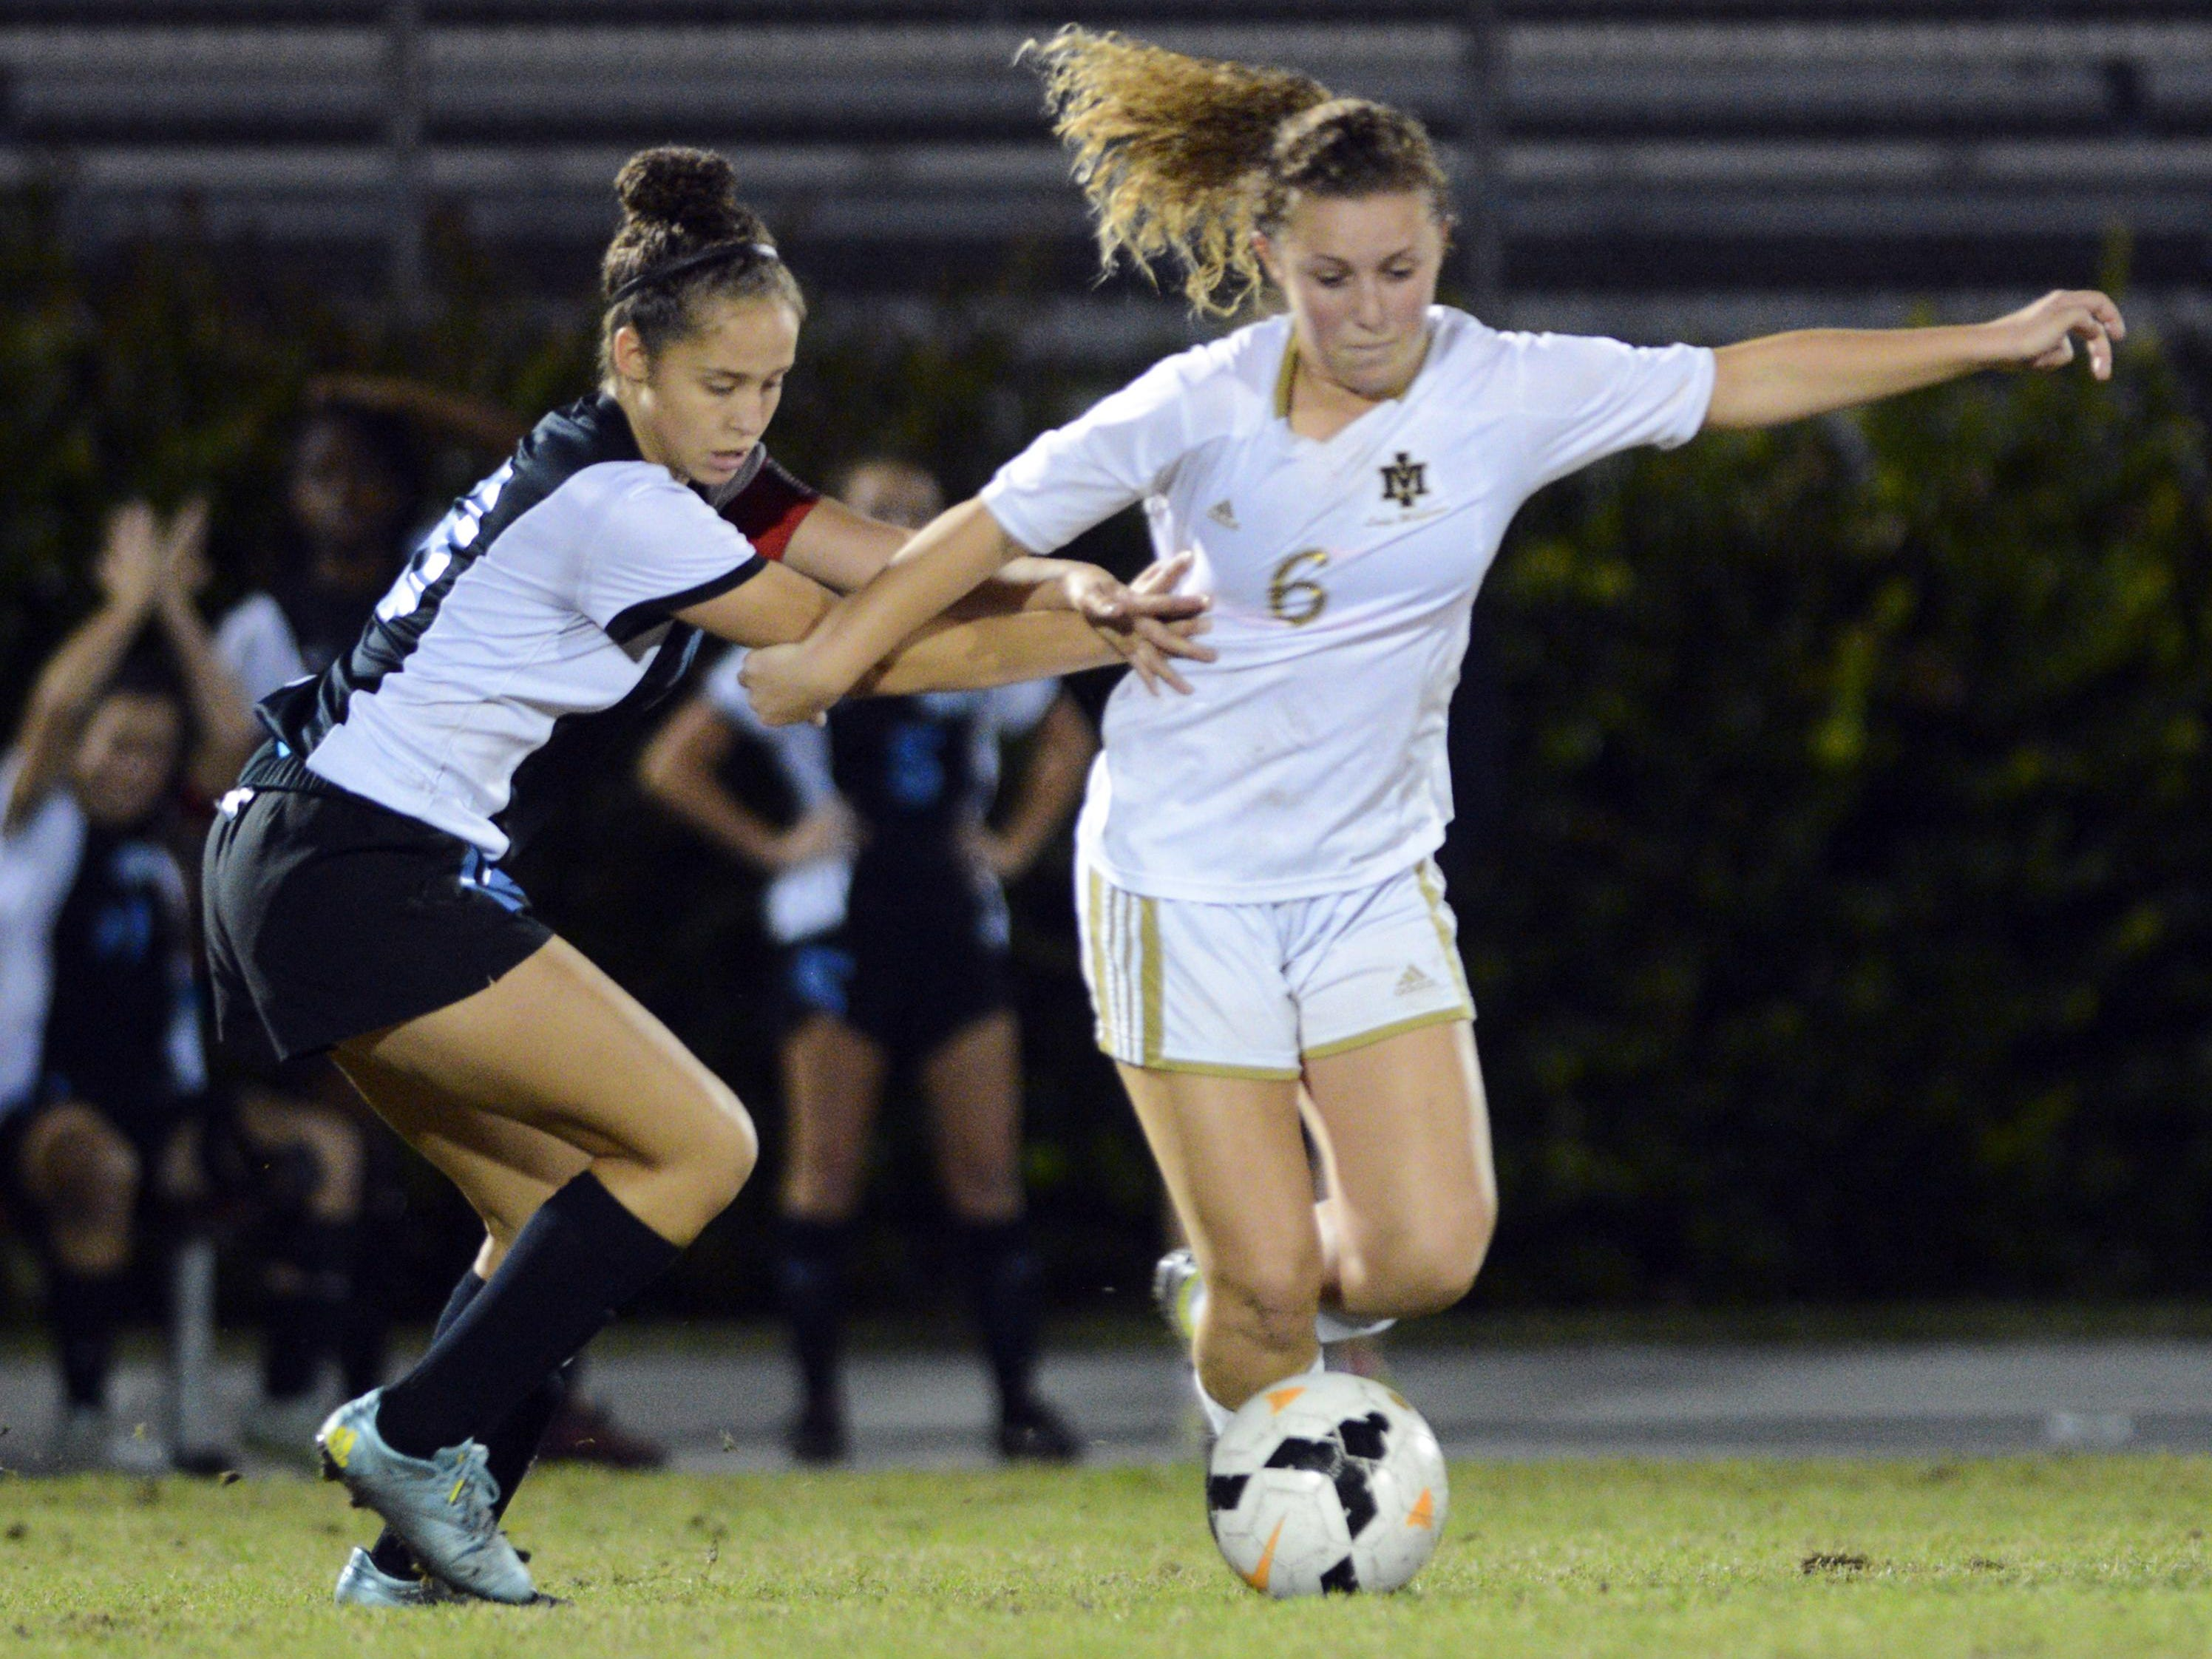 Rockledge's Savannah Henriquez (18) battles with Julia Martin (6) of Merritt Island during their district championship game Friday evening.